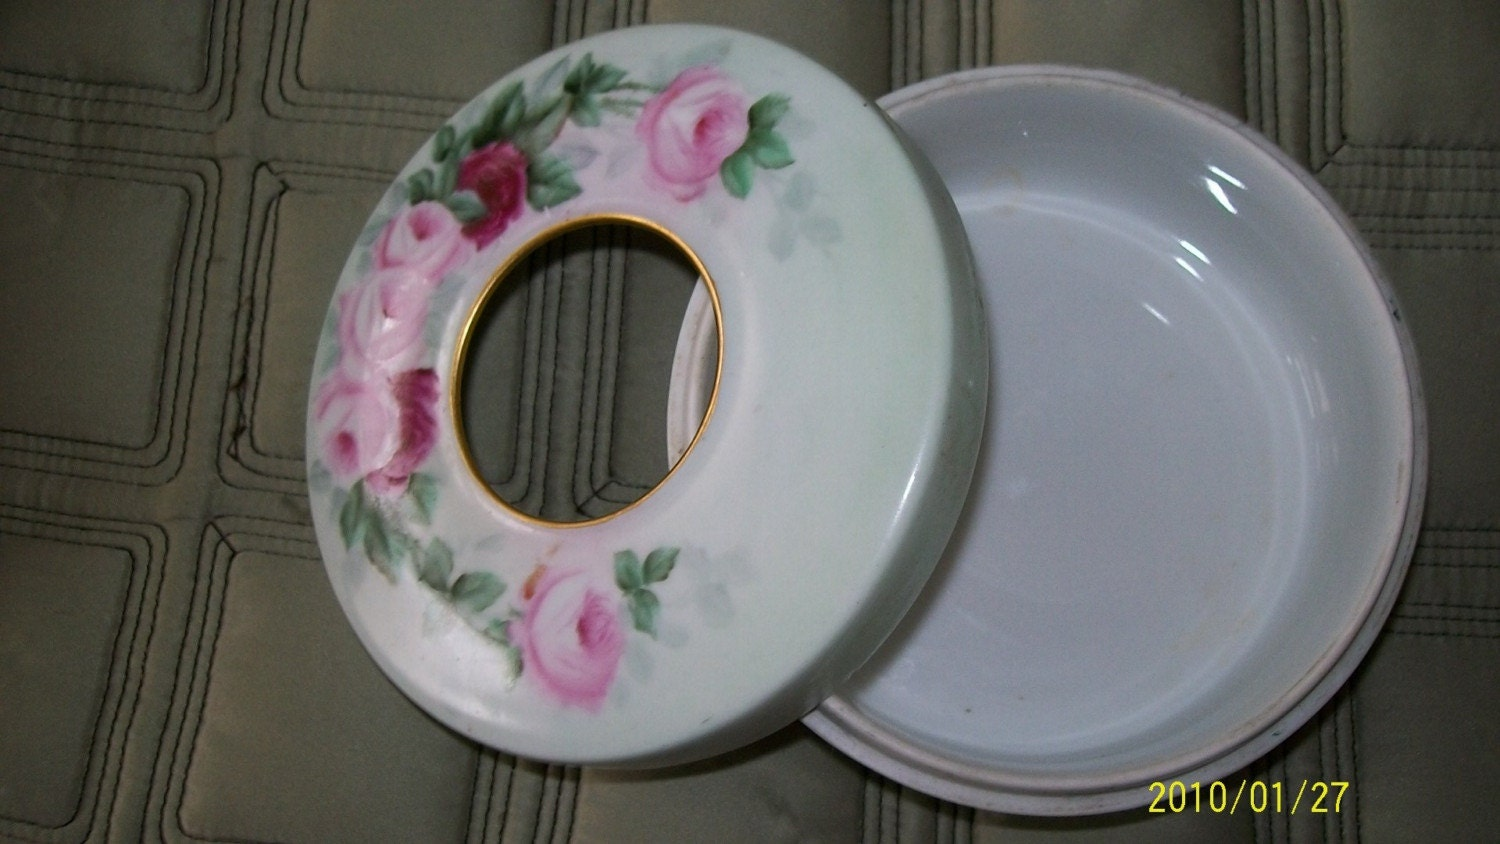 Vintage Hair Receiver dish with Pink Roses